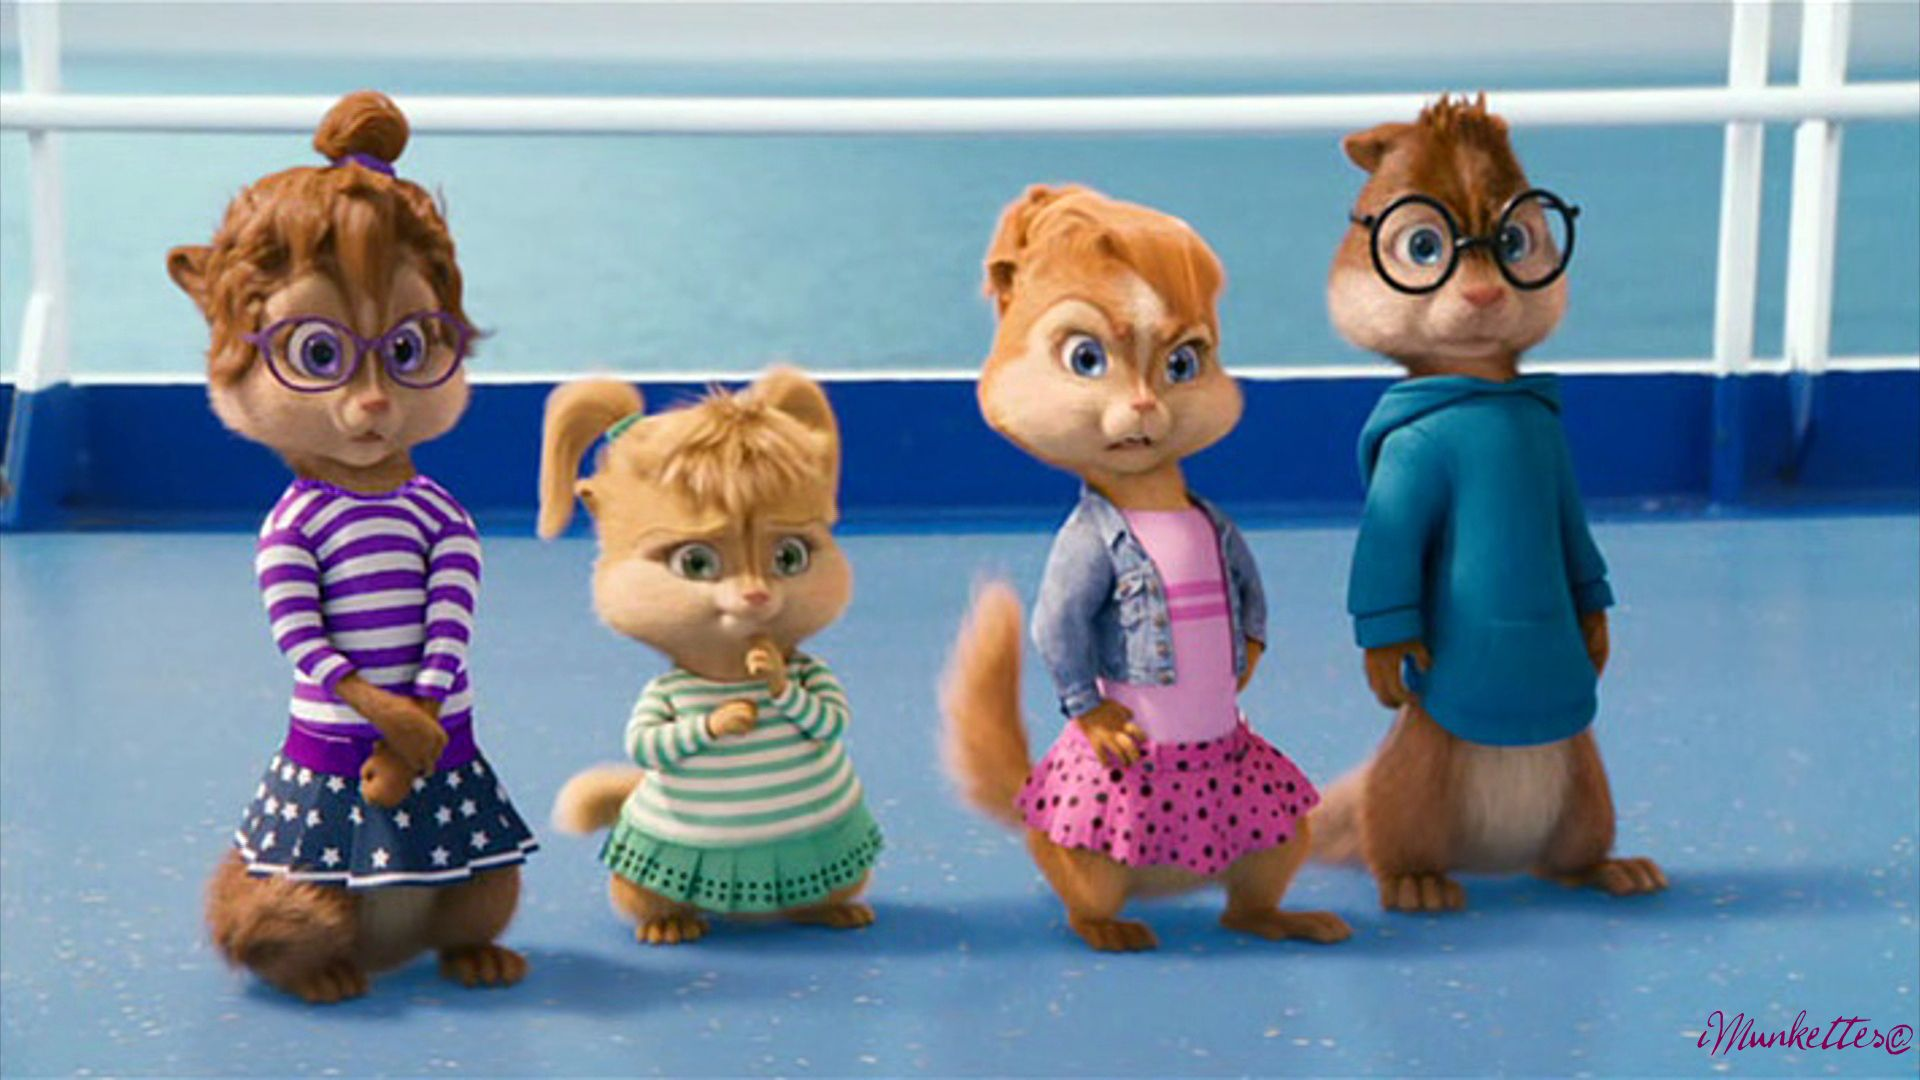 Alvinnn And The Chipmunks Brittany And Alvin alvin & the chipmunks: chipwrecked- reaction to alvin's puns